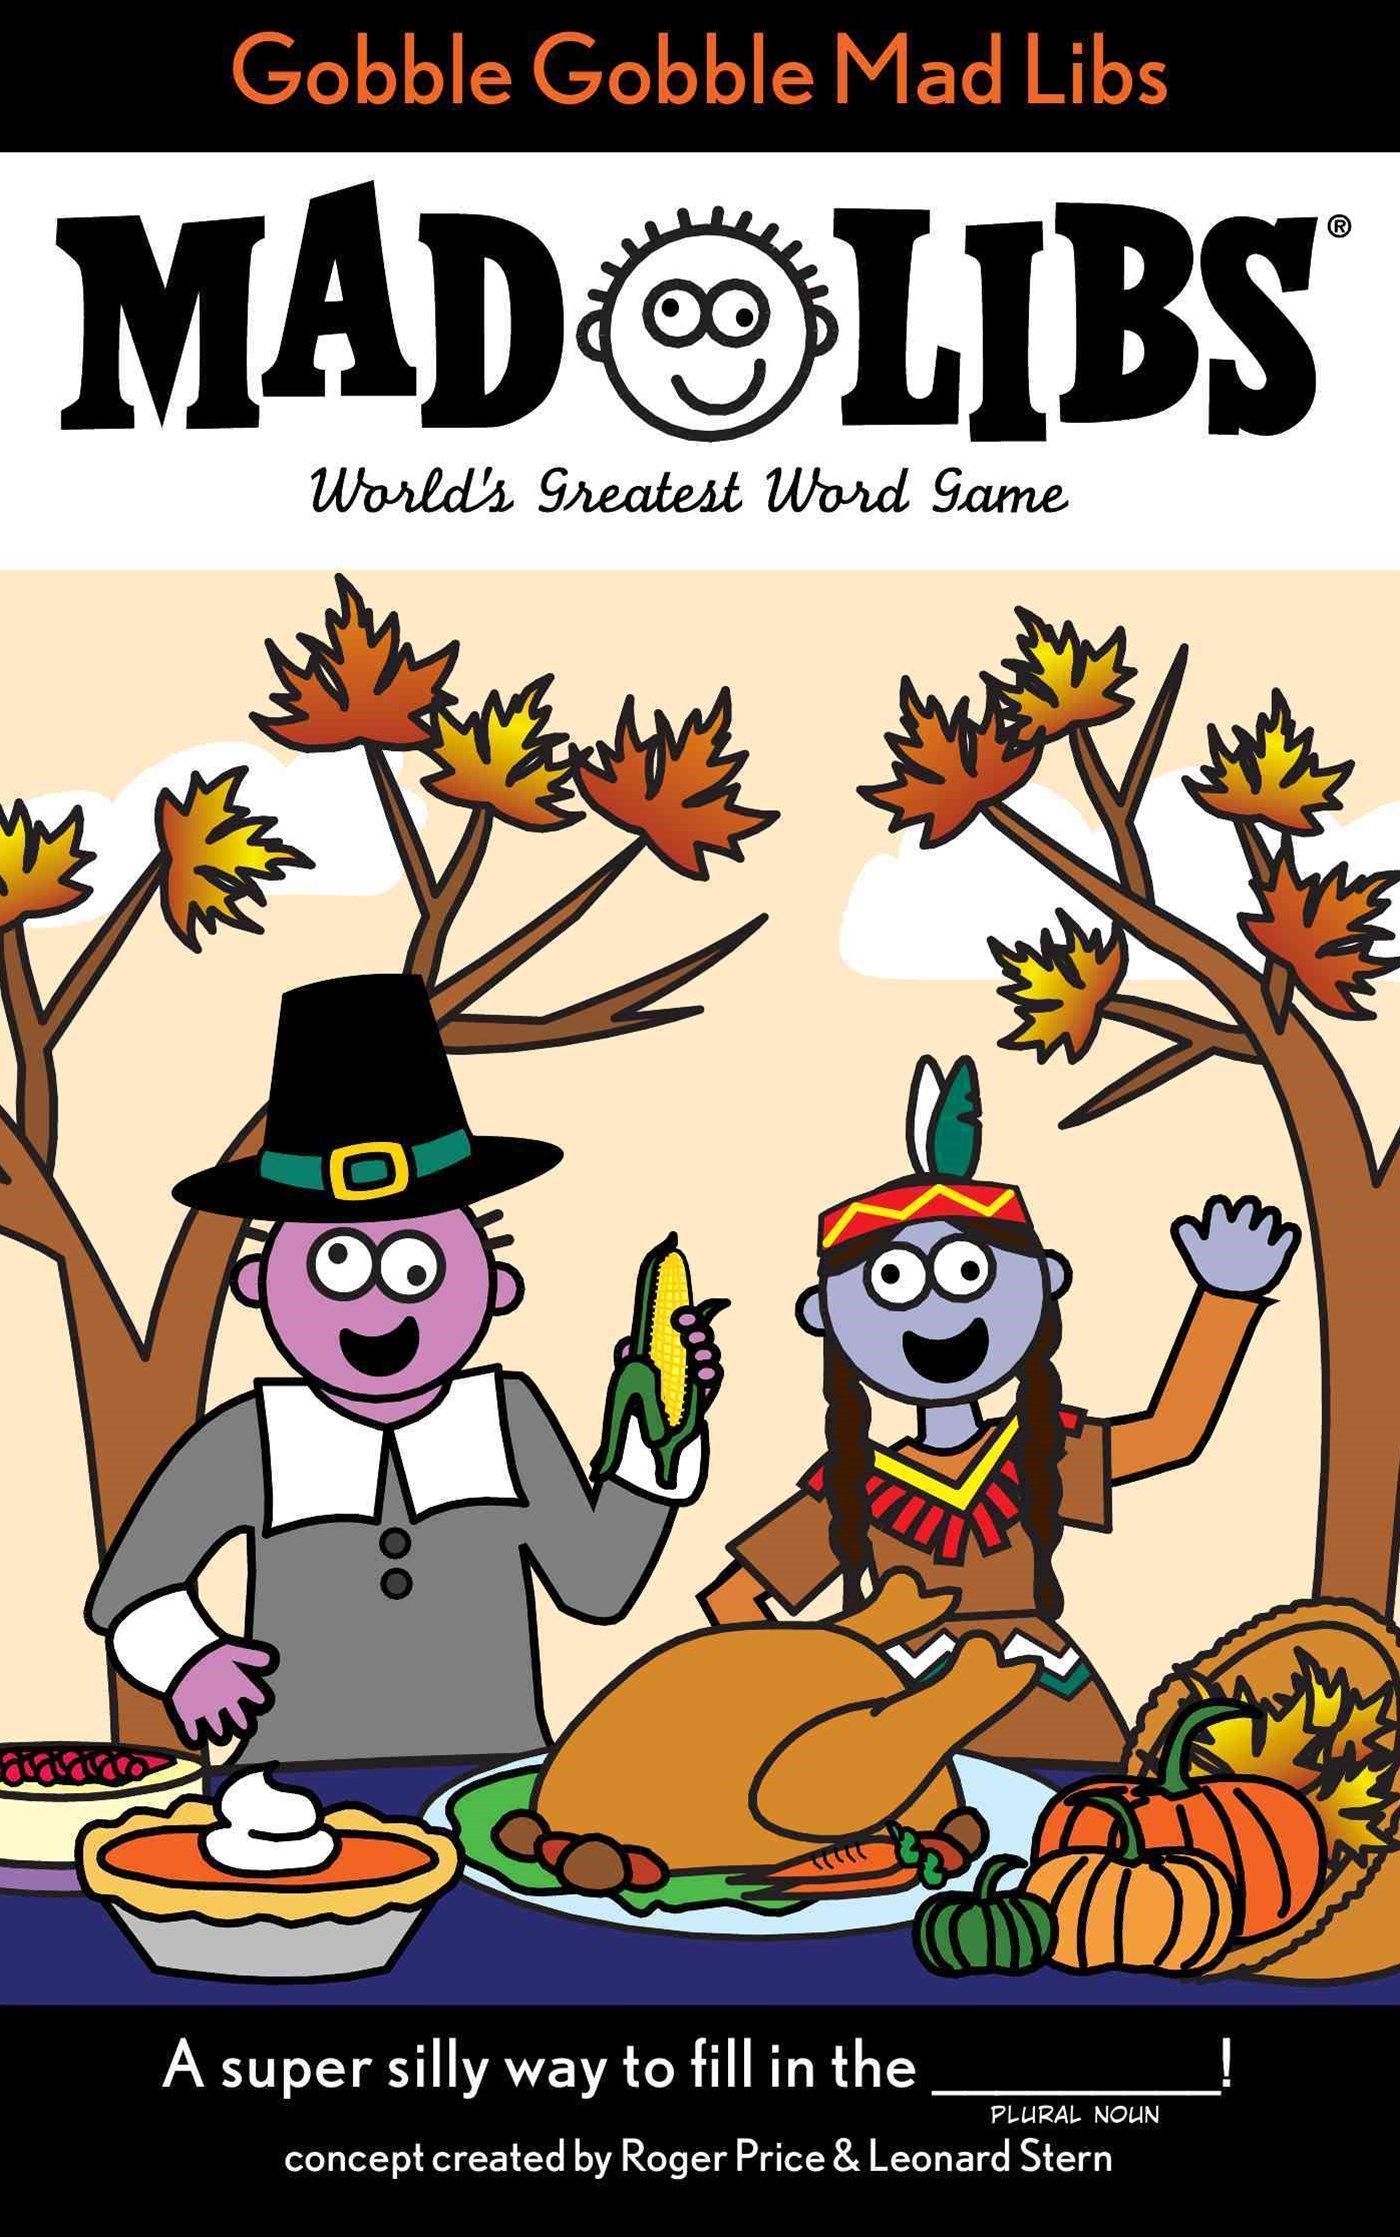 Gobble Gobble Mad Libs